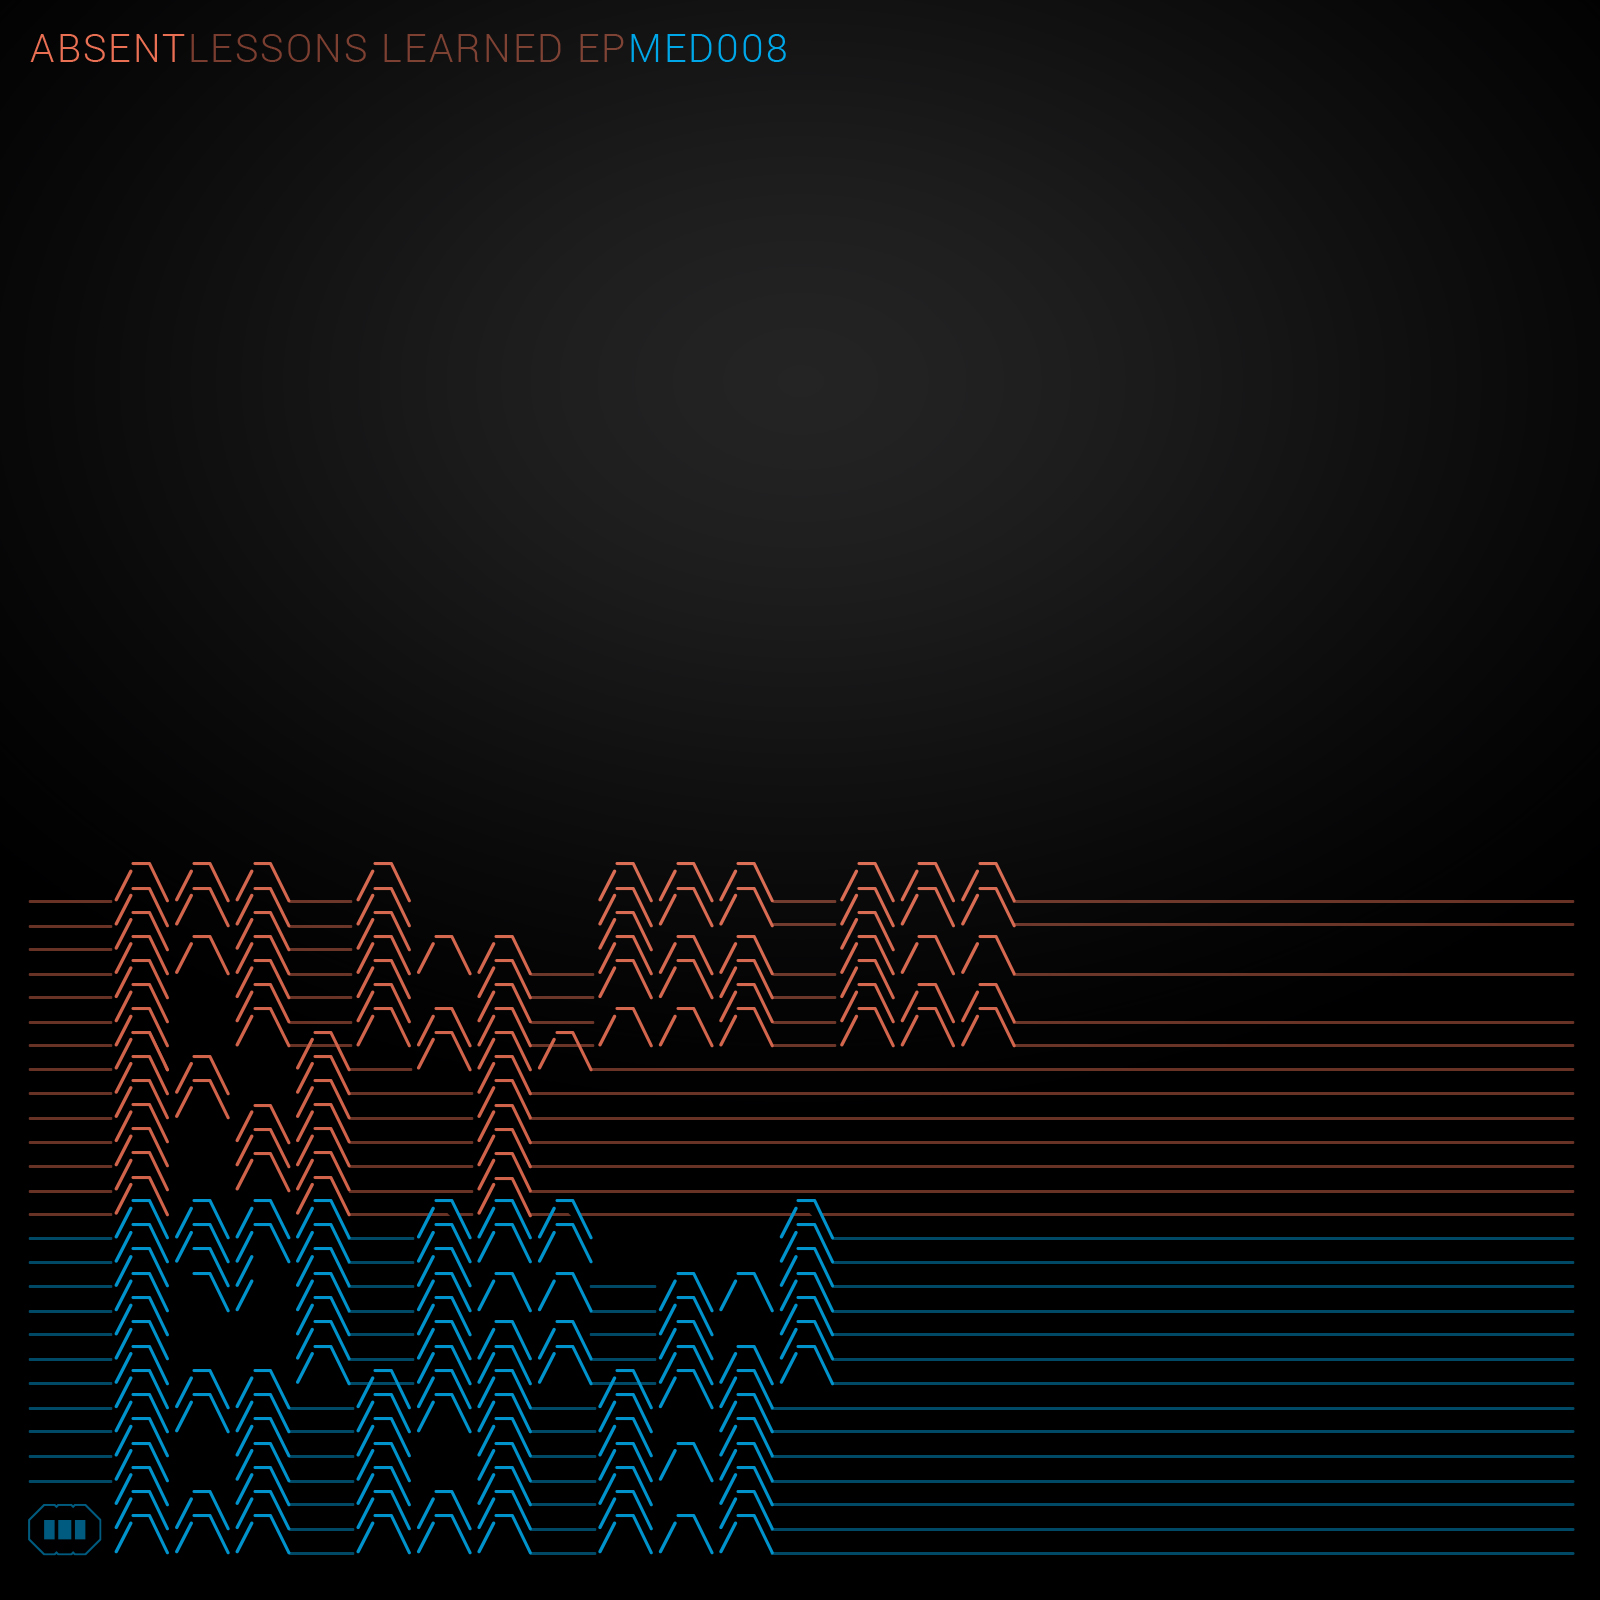 Absent_Lessons Learned EP_Modular Expansion records_MED008